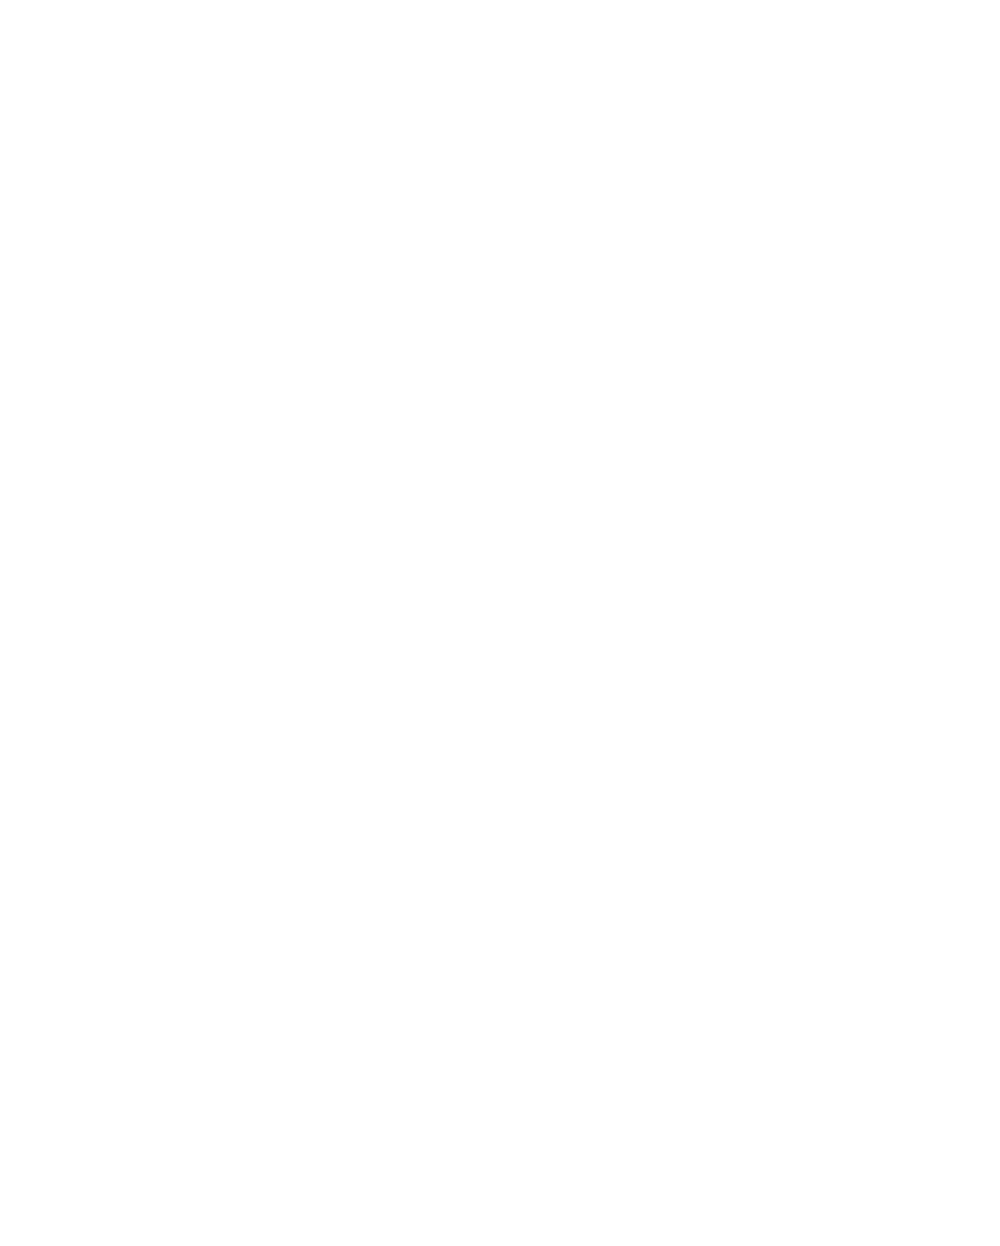 Greatest works deutsche grammophon. Mozart drawing vector transparent stock